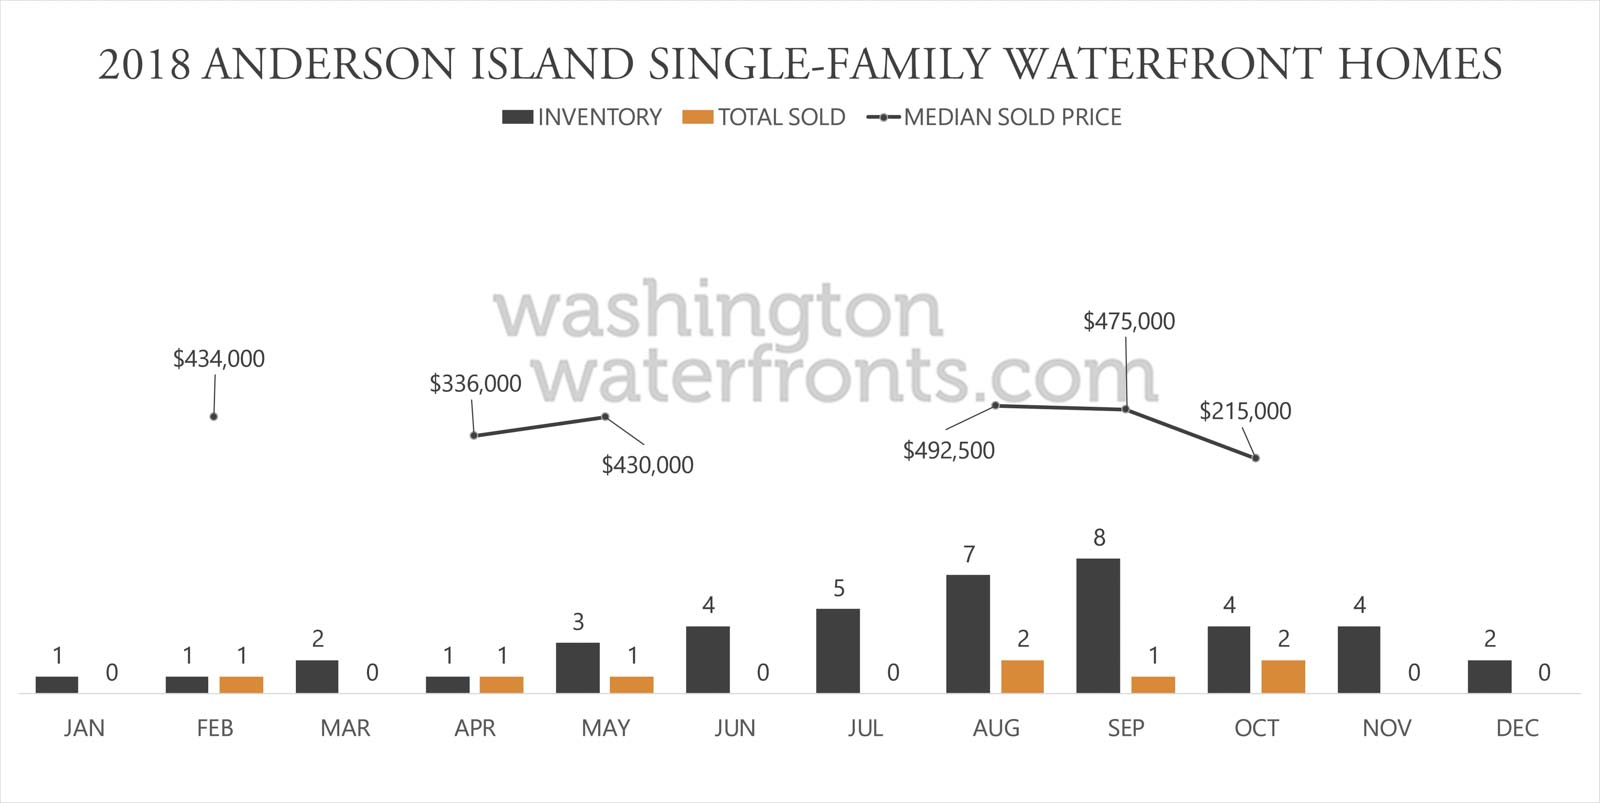 Anderson Island Waterfront Inventory